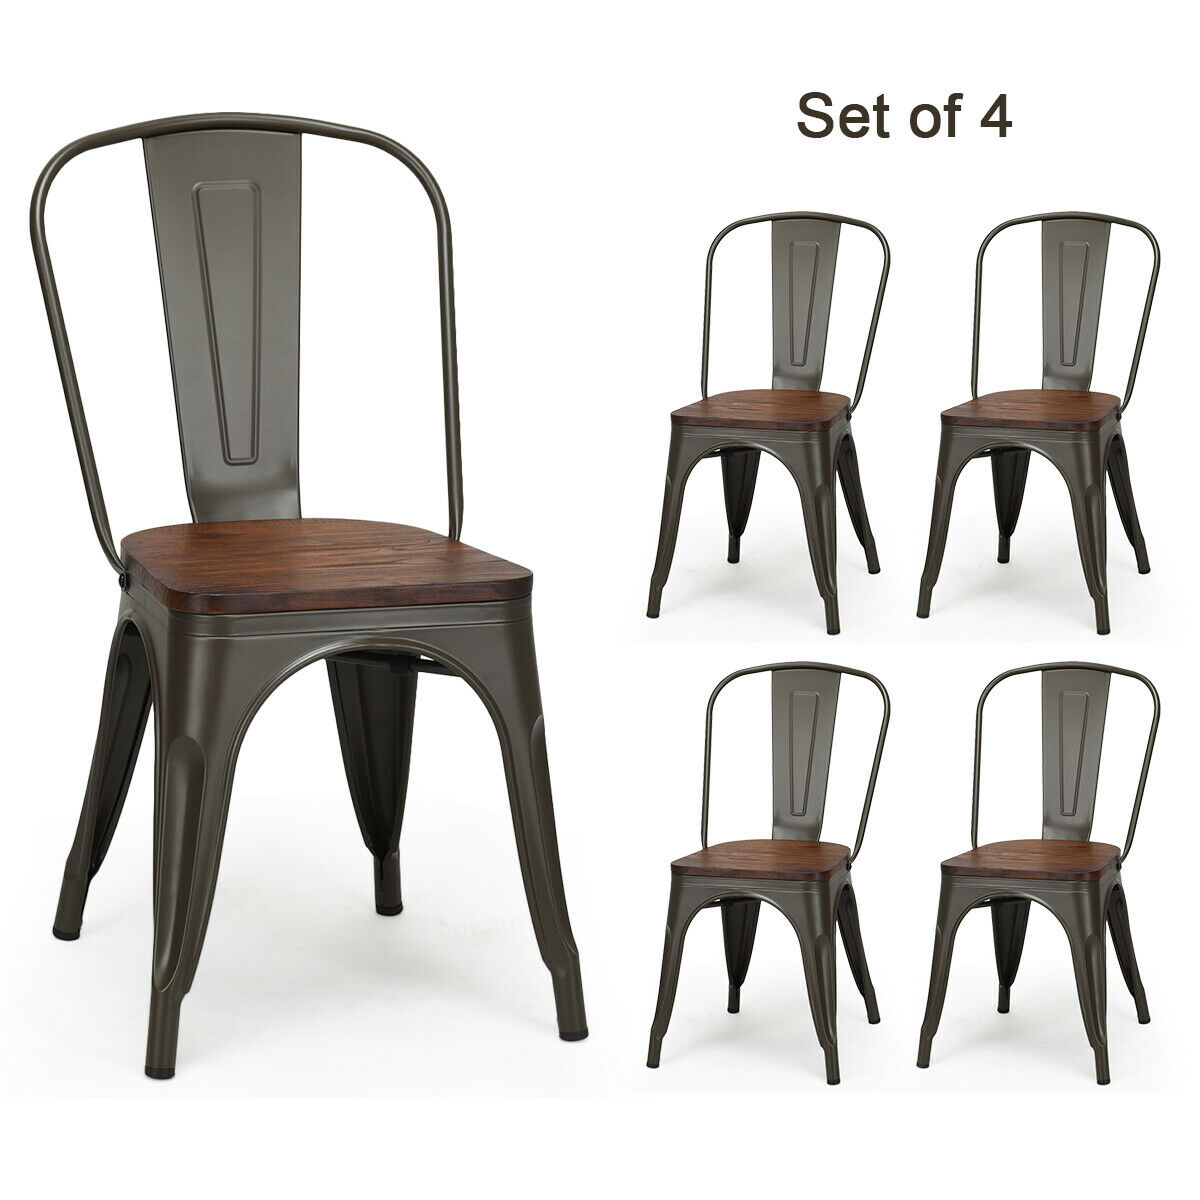 Set of 4 Tolix Style Metal Dining Side Chair Wooden Seat ...